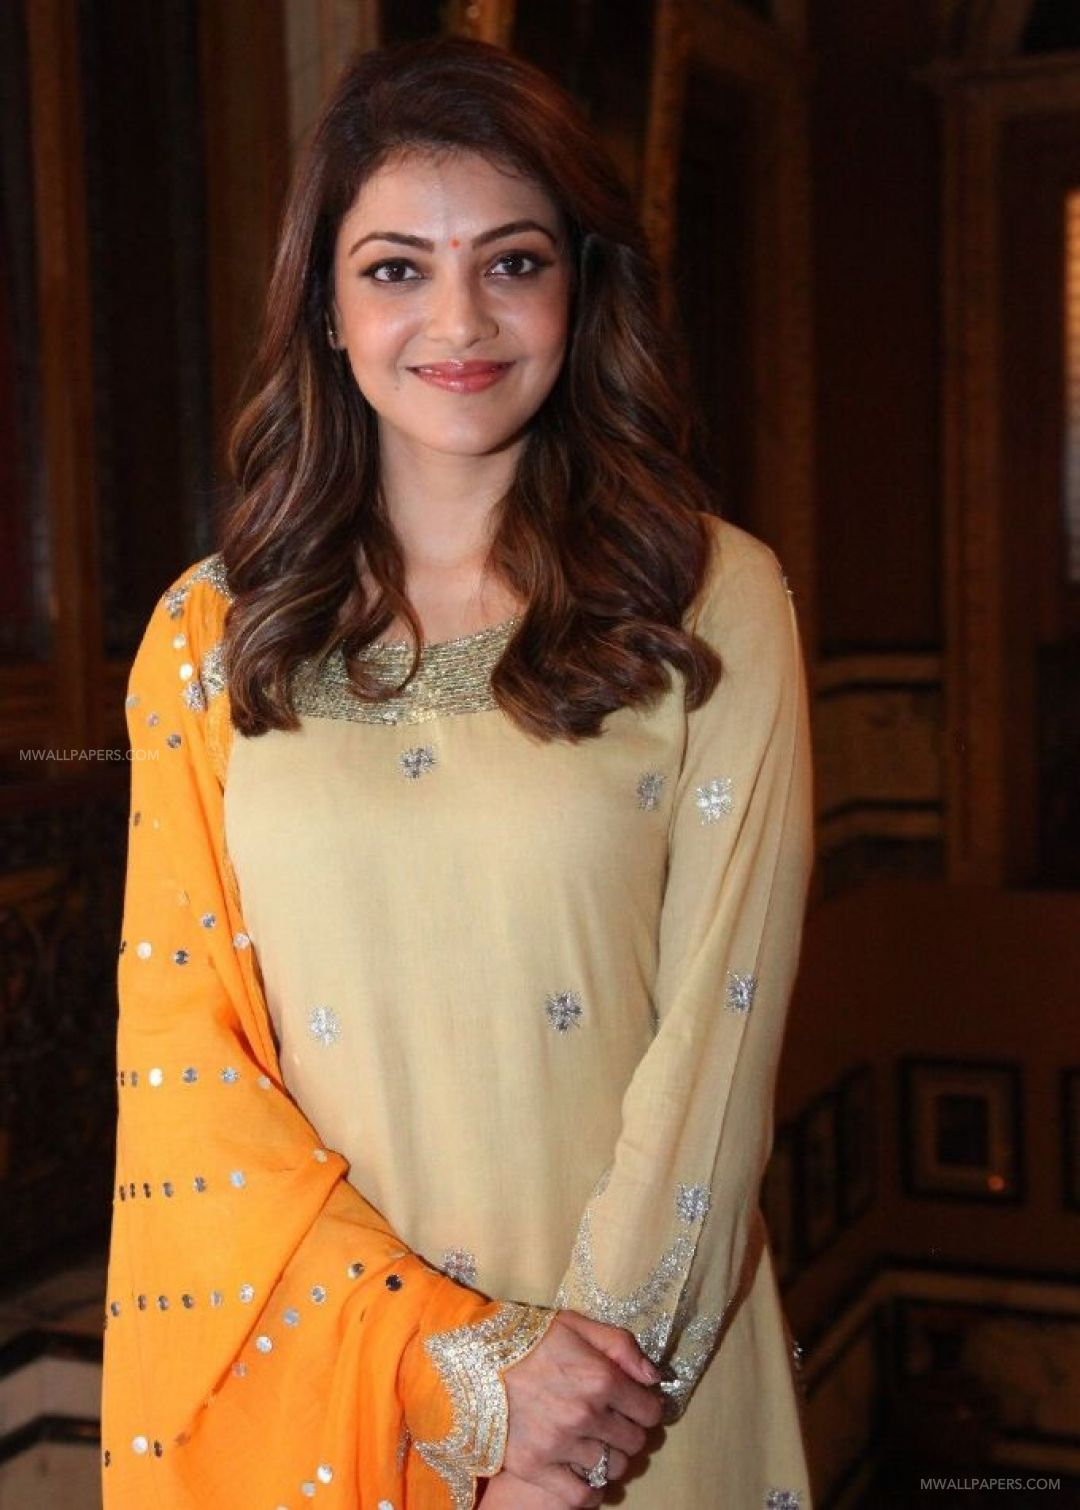 Kajal Agarwals beautiful yellow salwar photos HD Wallpapers (Desktop Background / Android / iPhone) (1080p, 4k) (37526) - Kajal Agarwal